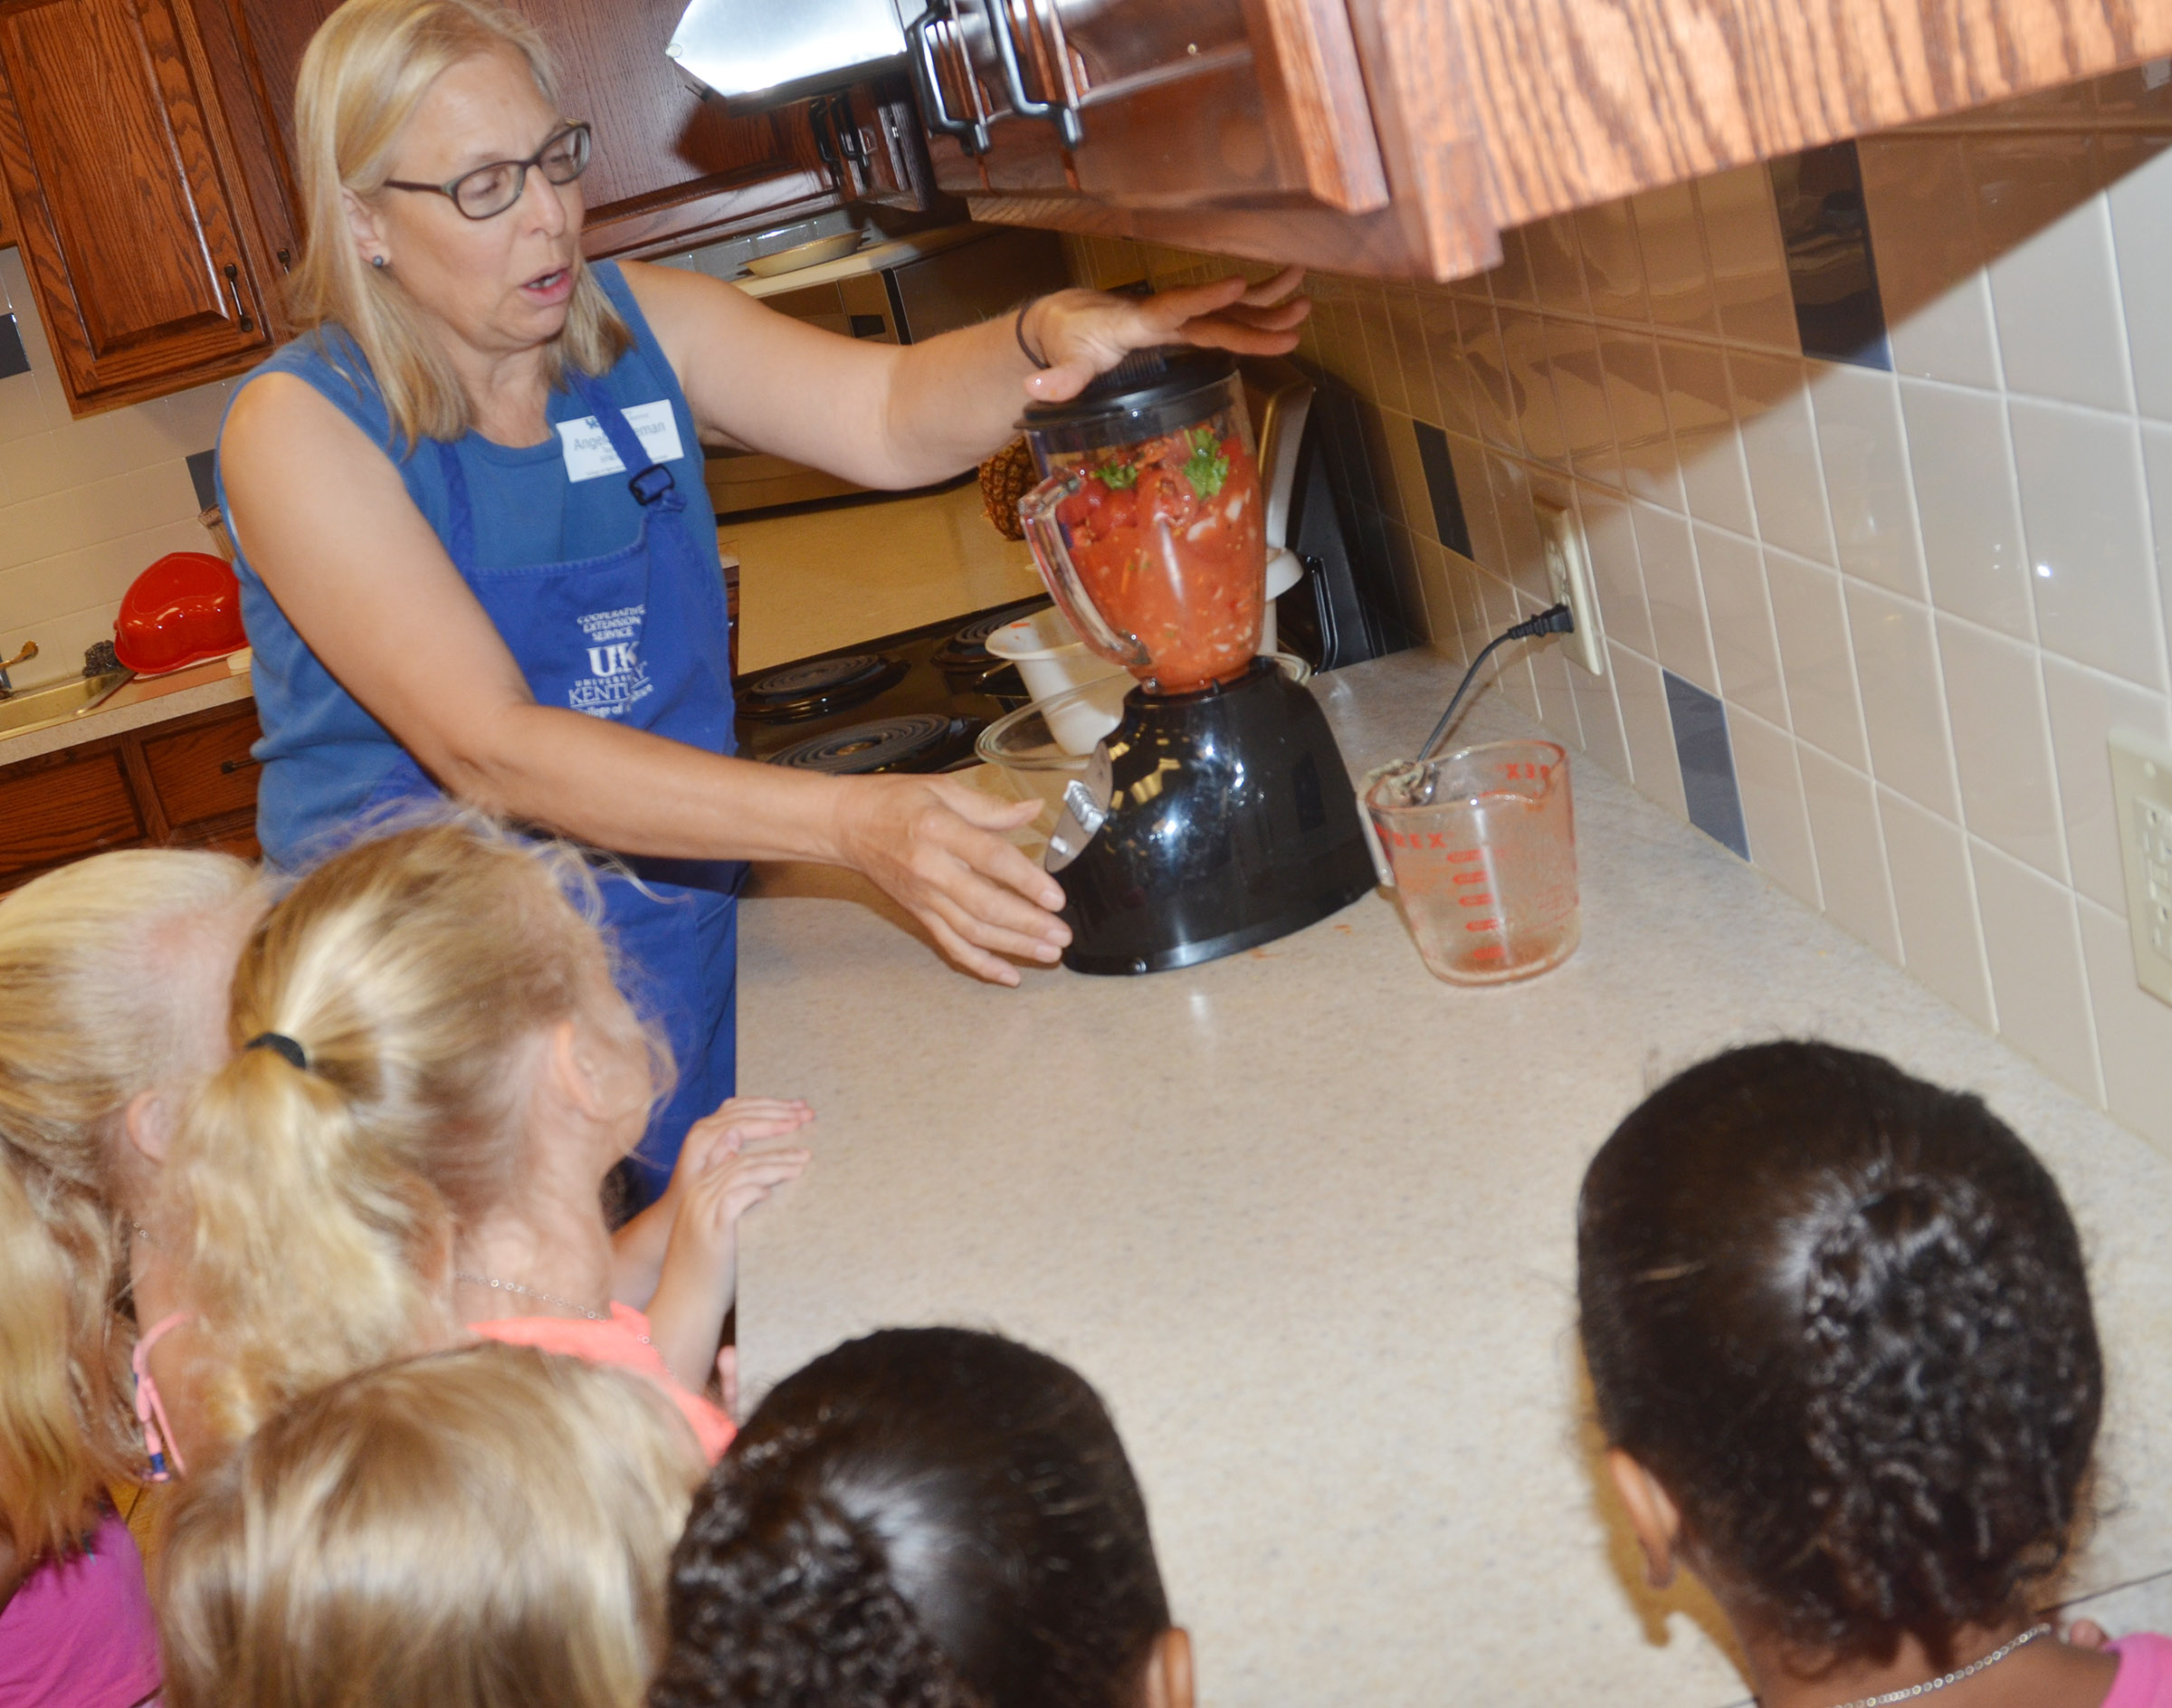 Angie Freeman, expanded foods and nutrition program assistant at Taylor County Extension Office, shows students how salsa is made in a blender.